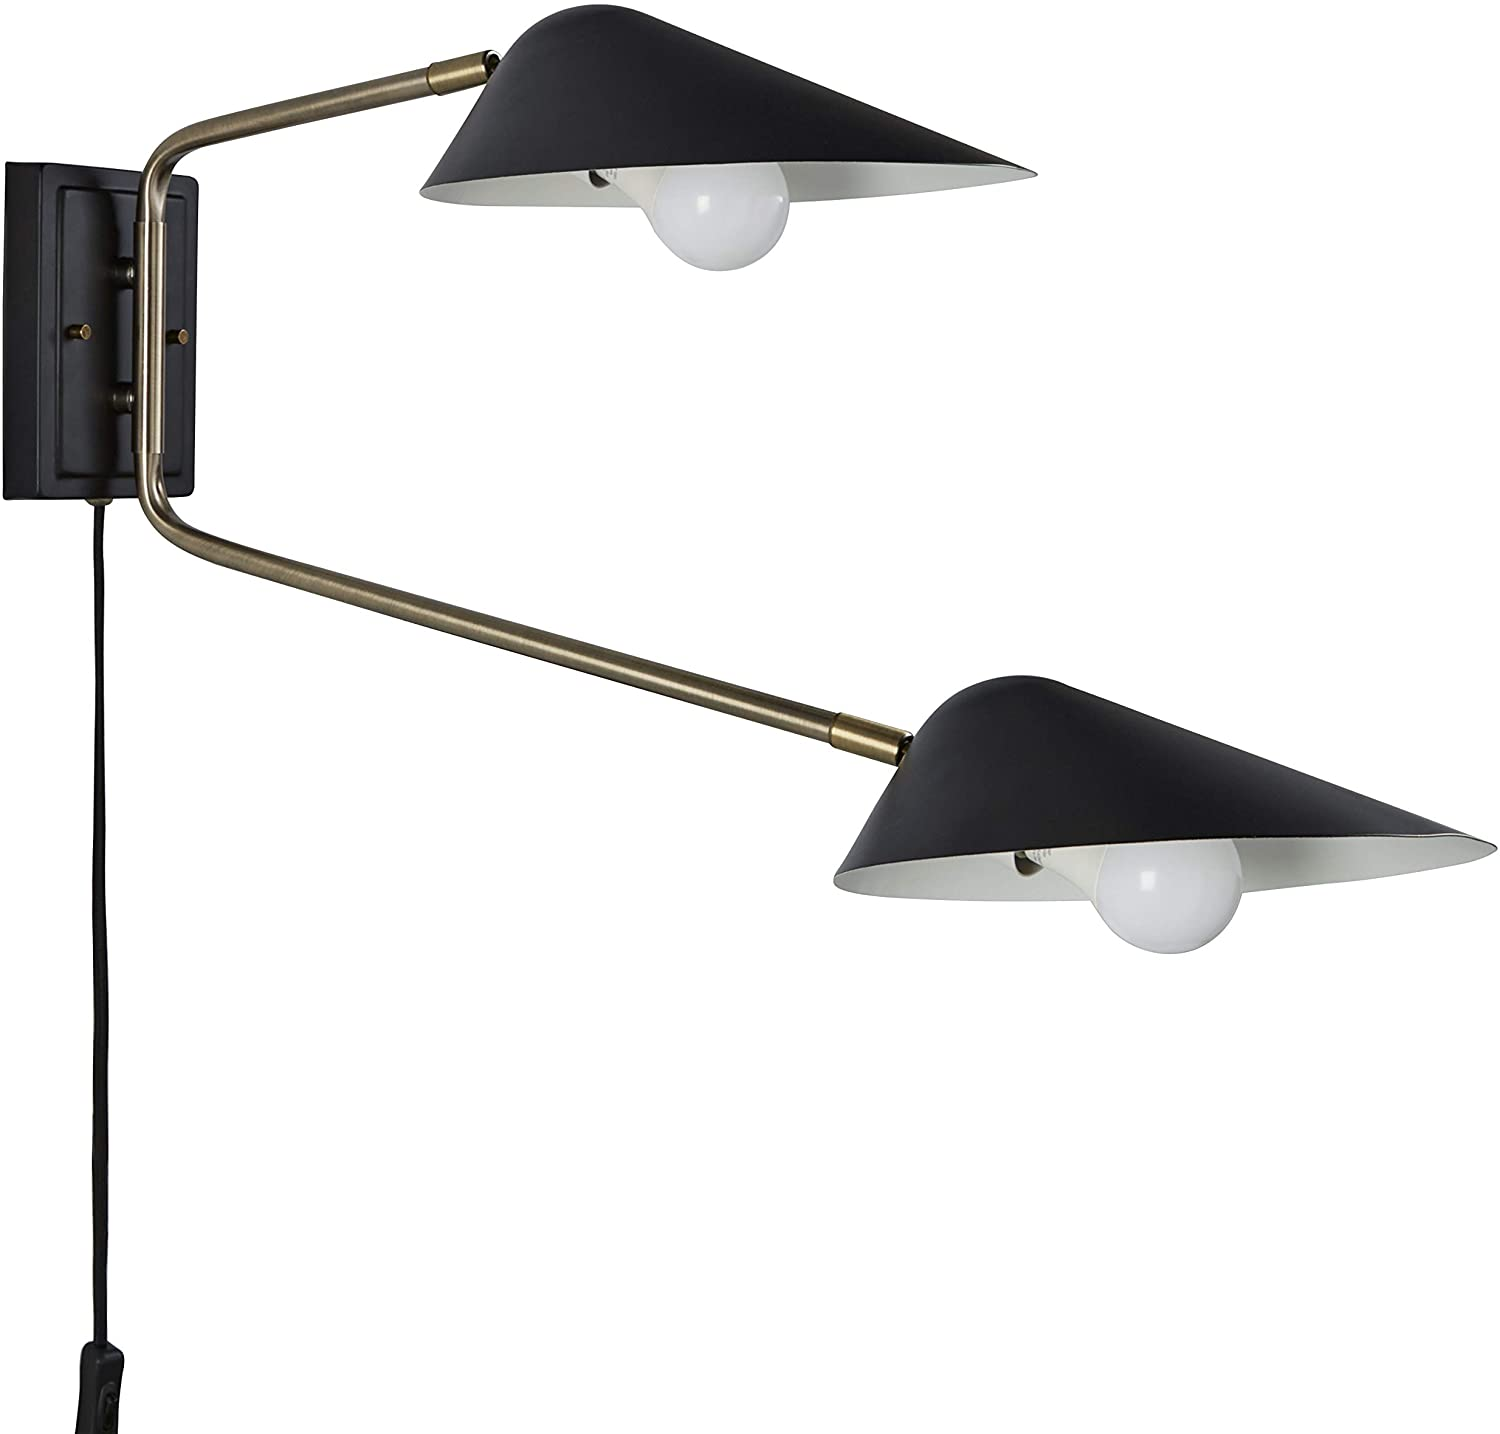 DHgate Brand – Rivet Mid-Century Swiveling Wall Sconce with Bulb, 16.2